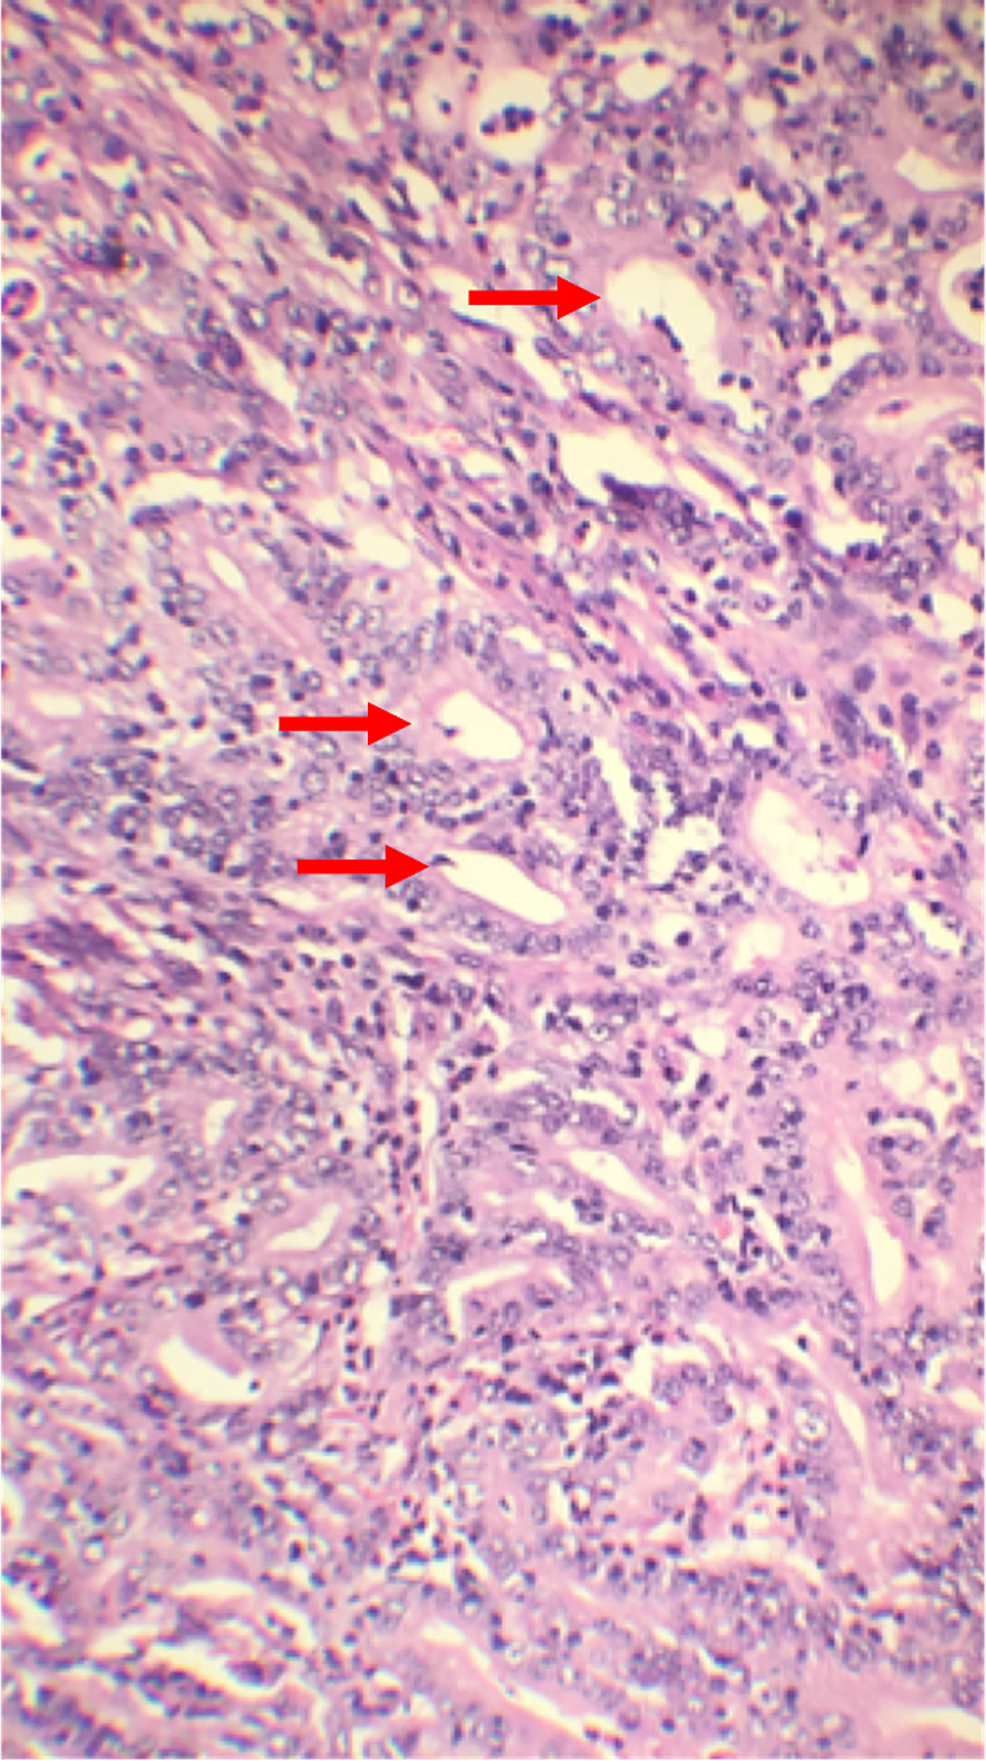 Histopathology-of-distal-stomach-showing-poorly-differentiated-adenocarcinoma-of-the-intestinal-type.